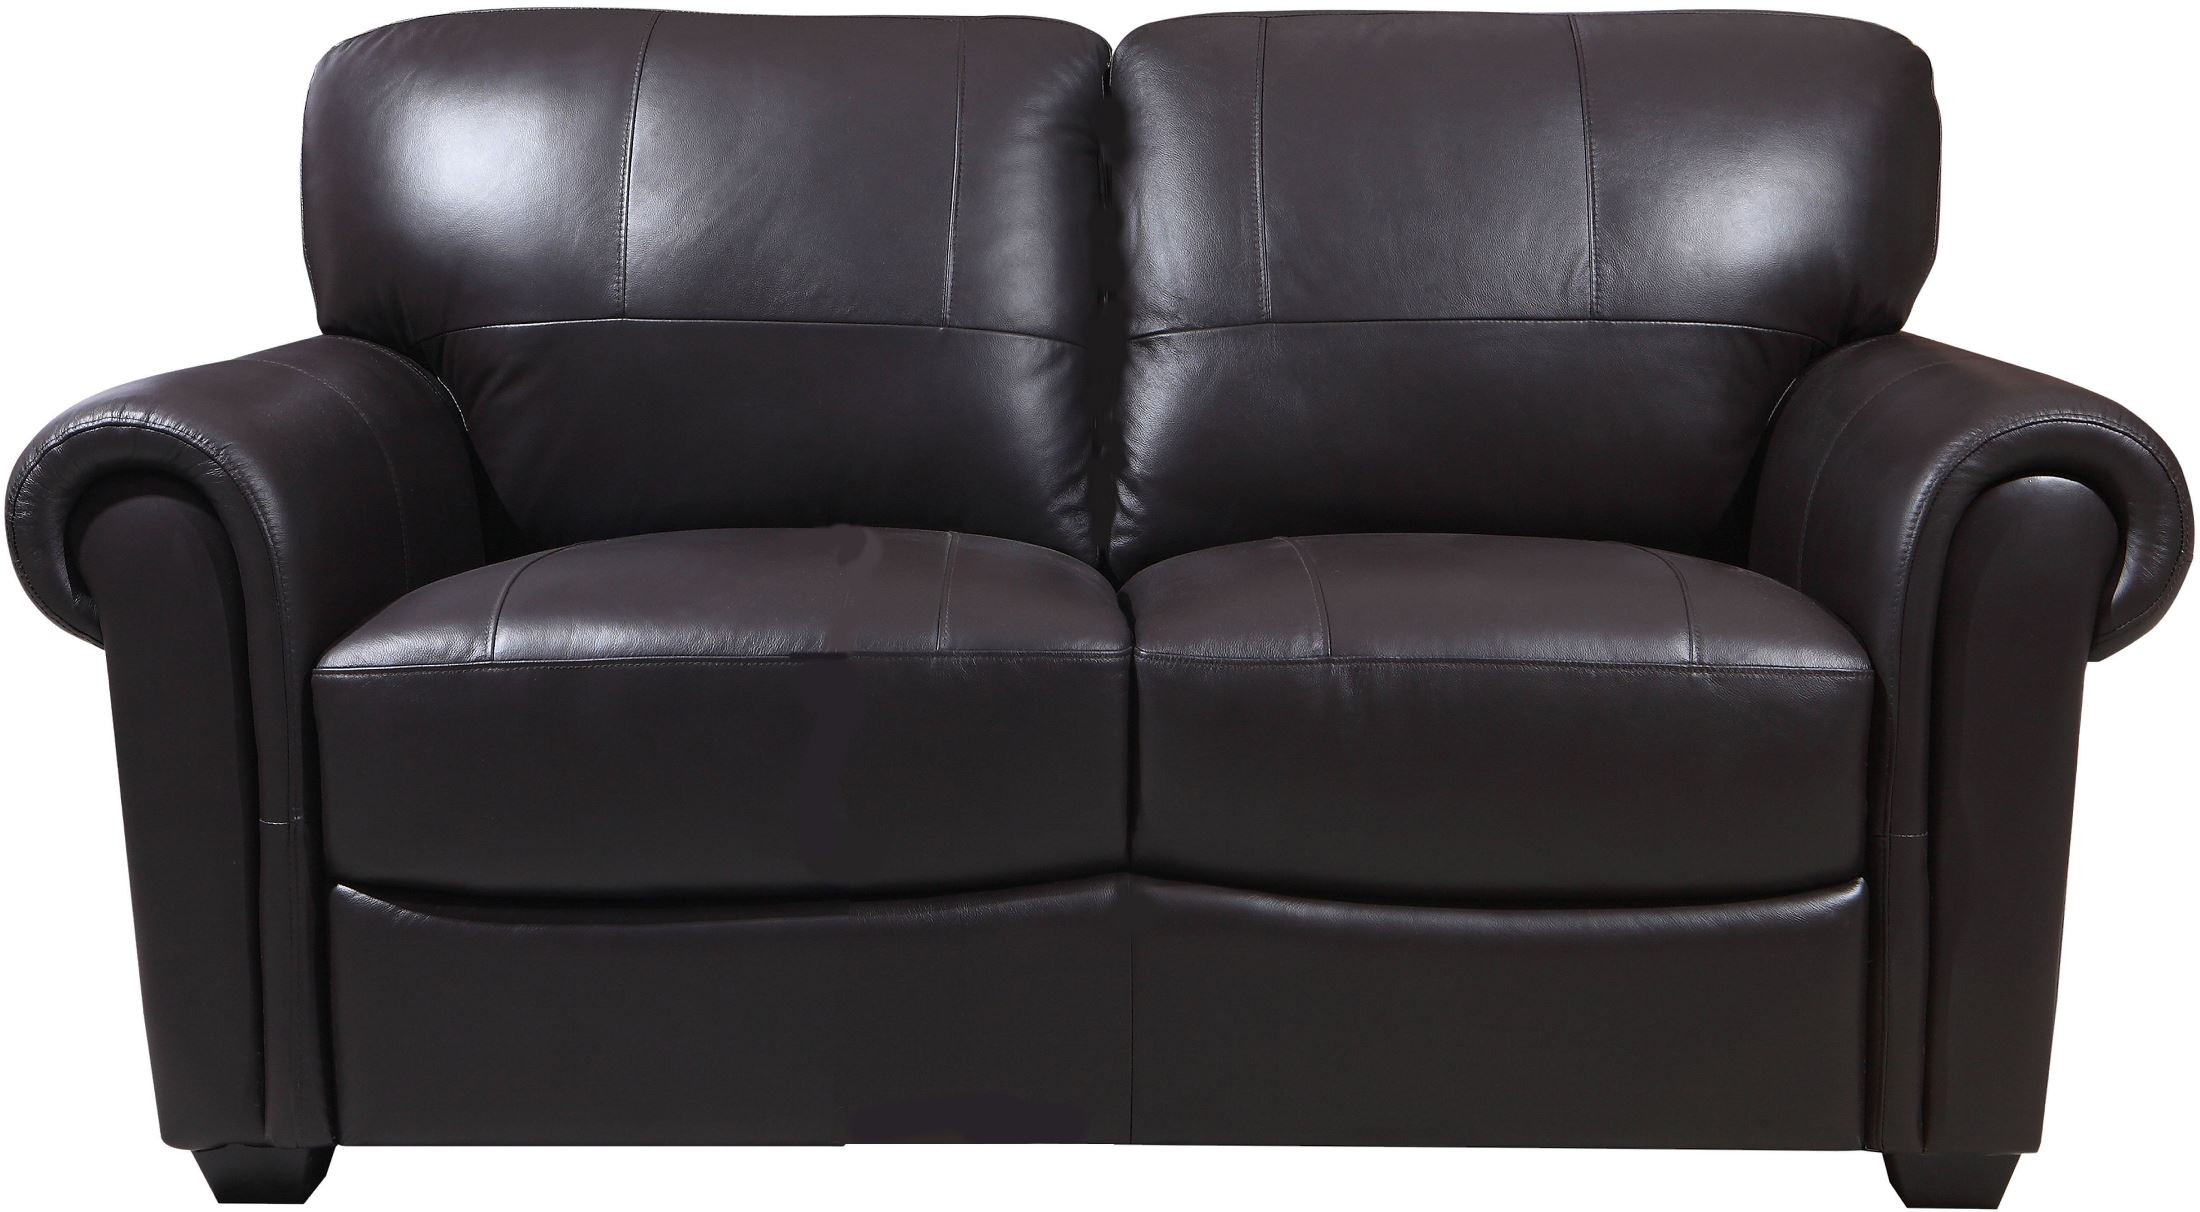 Shae Branson Dark Brown Leather Loveseat From Luxe Leather Coleman Furniture